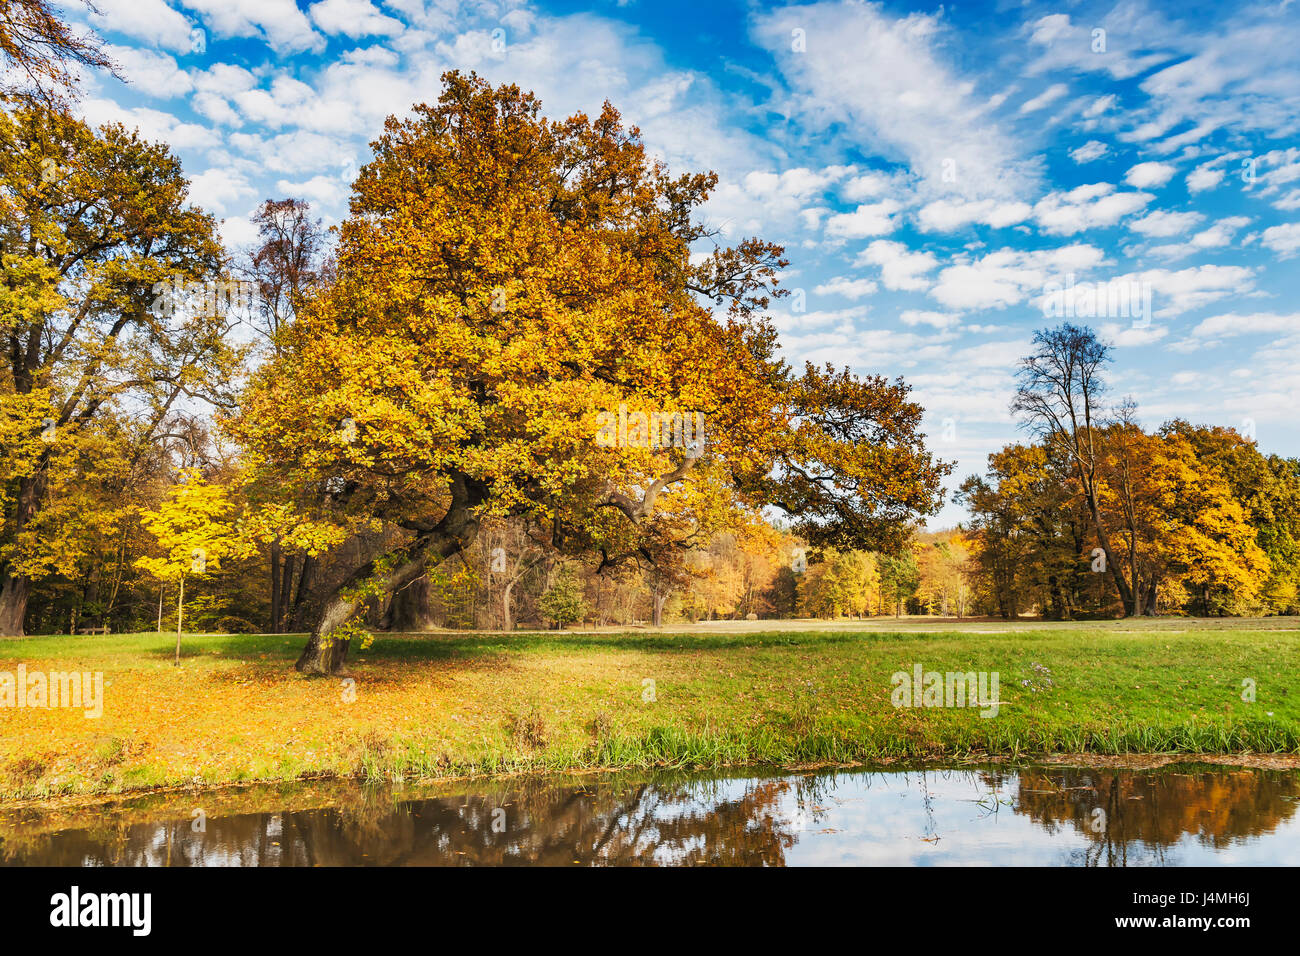 Fuerst Pueckler Park in Bad Muskau in autumn. Since 2004, the park belongs to the UNESCO World Heritage Site, Saxony, - Stock Image